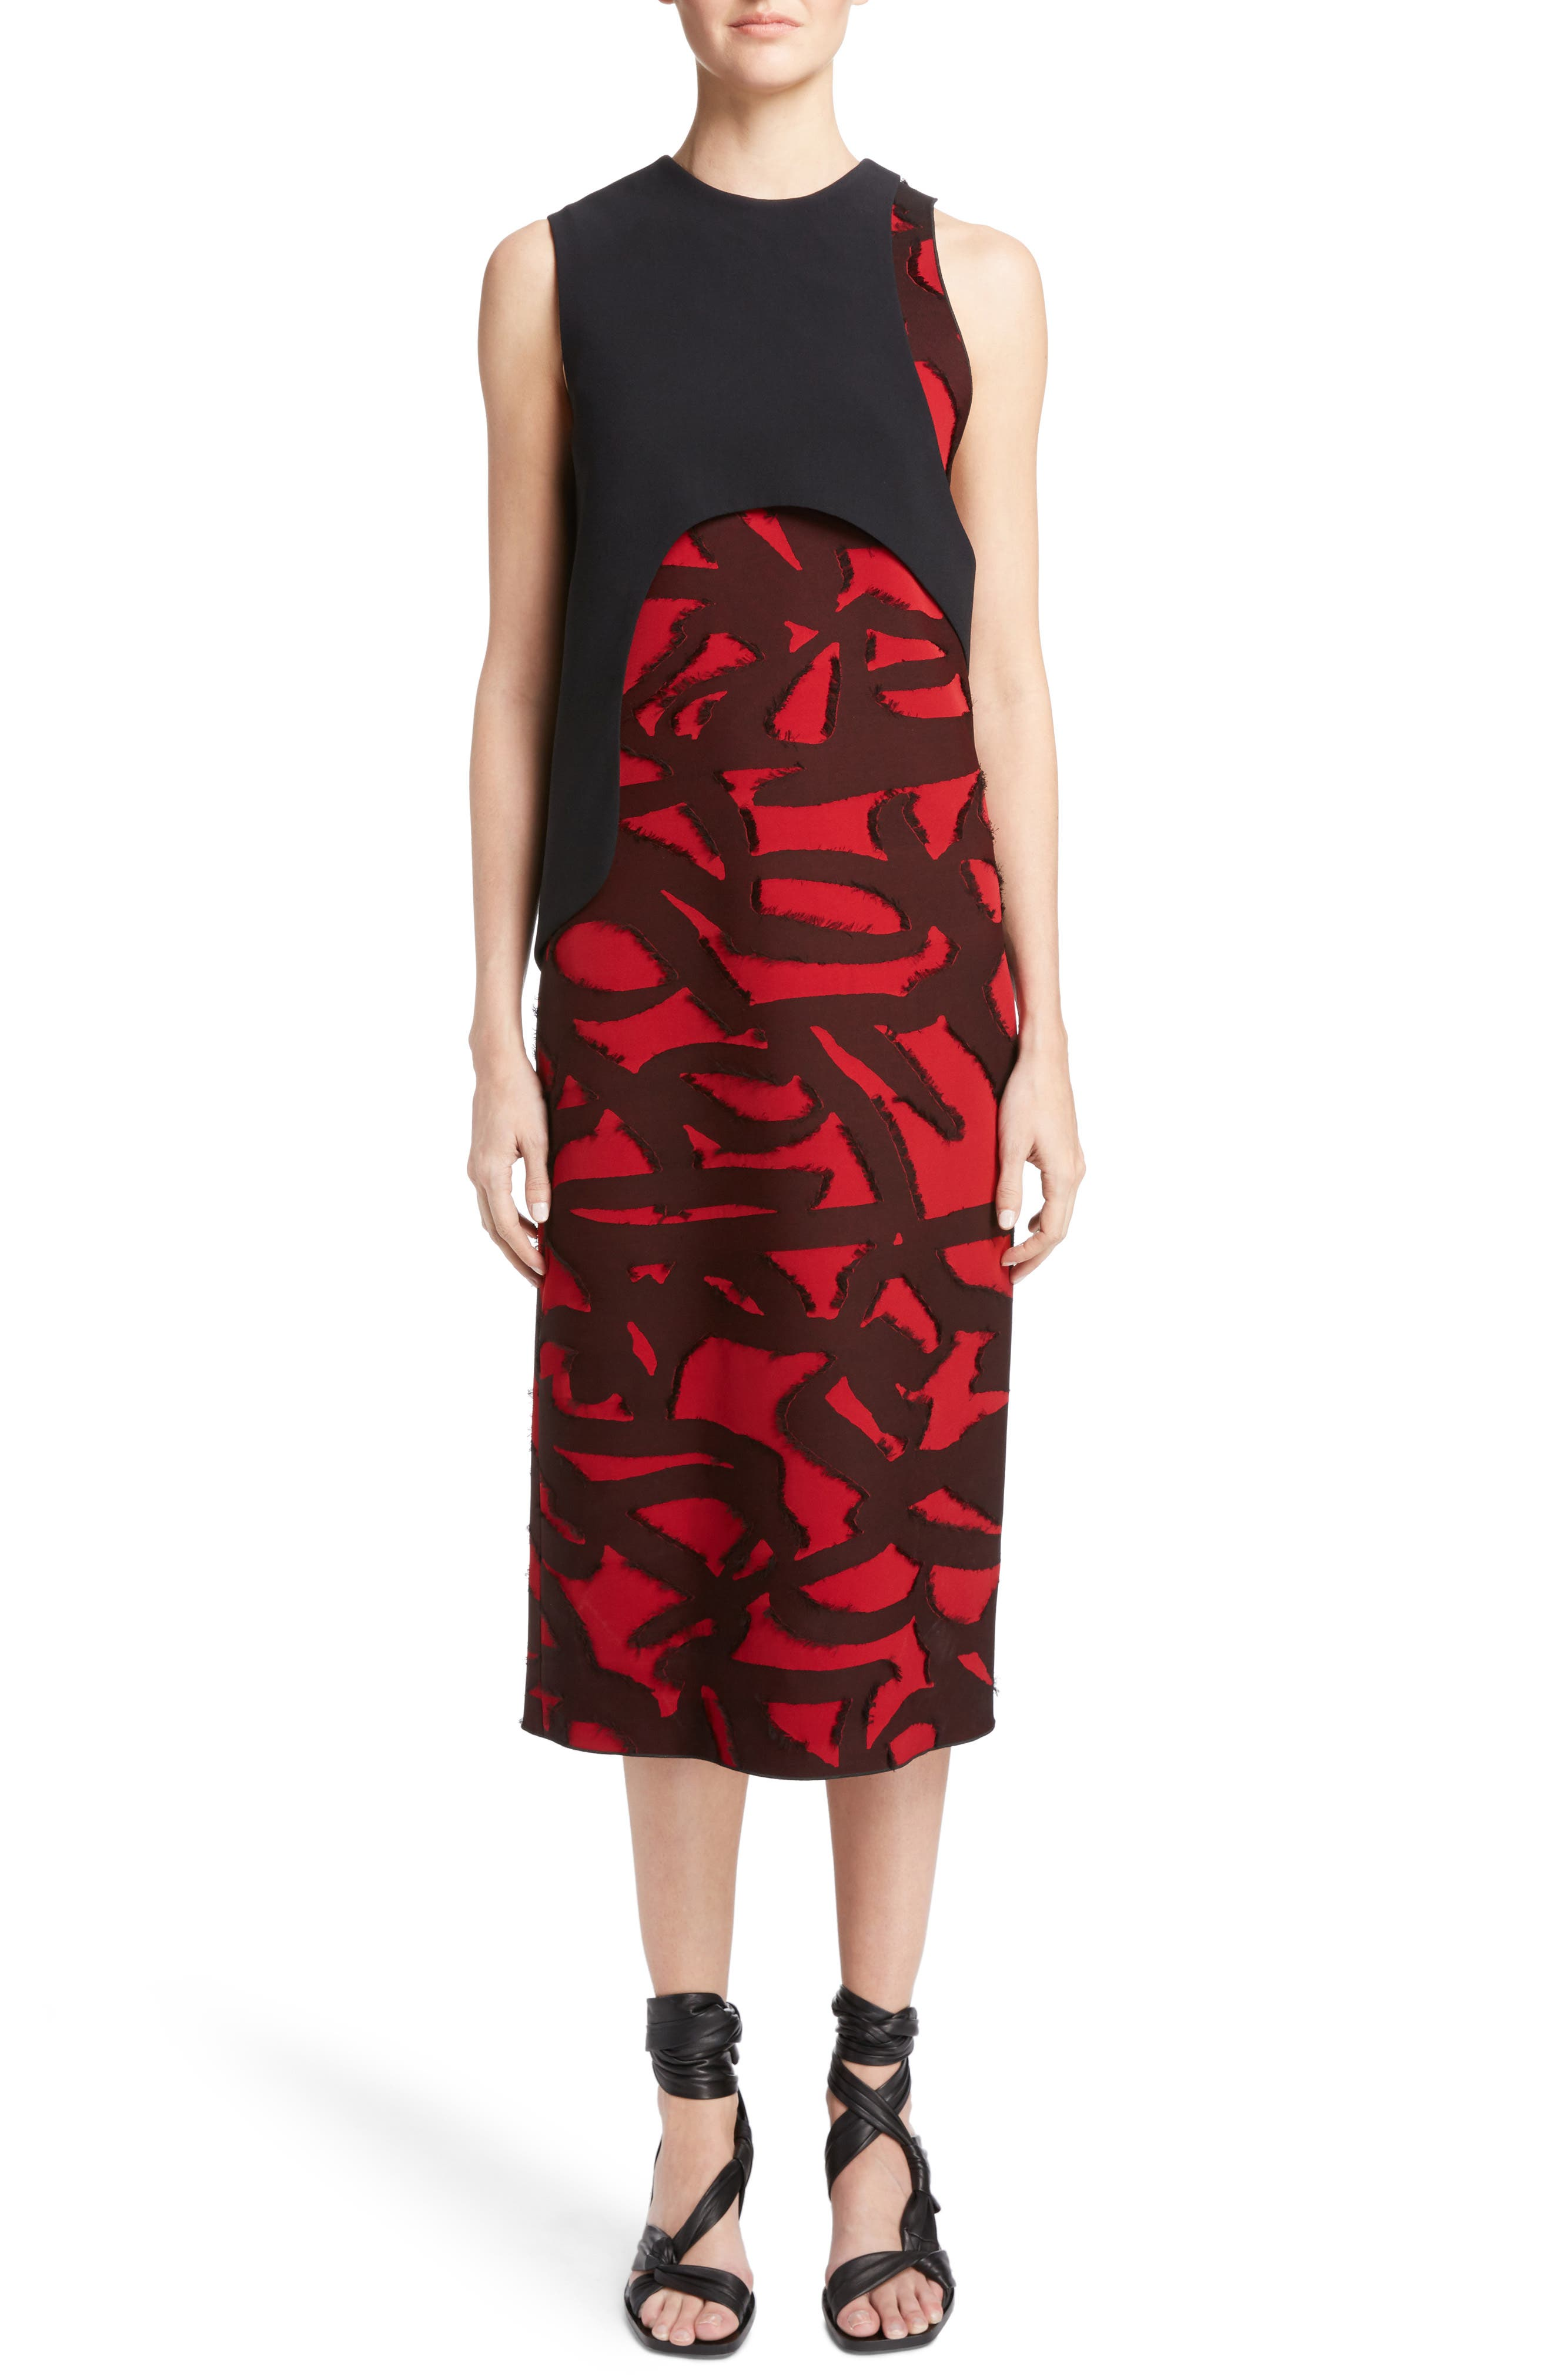 Alternate Image 1 Selected - Proenza Schouler Fil Coupé Jacquard Layered Dress